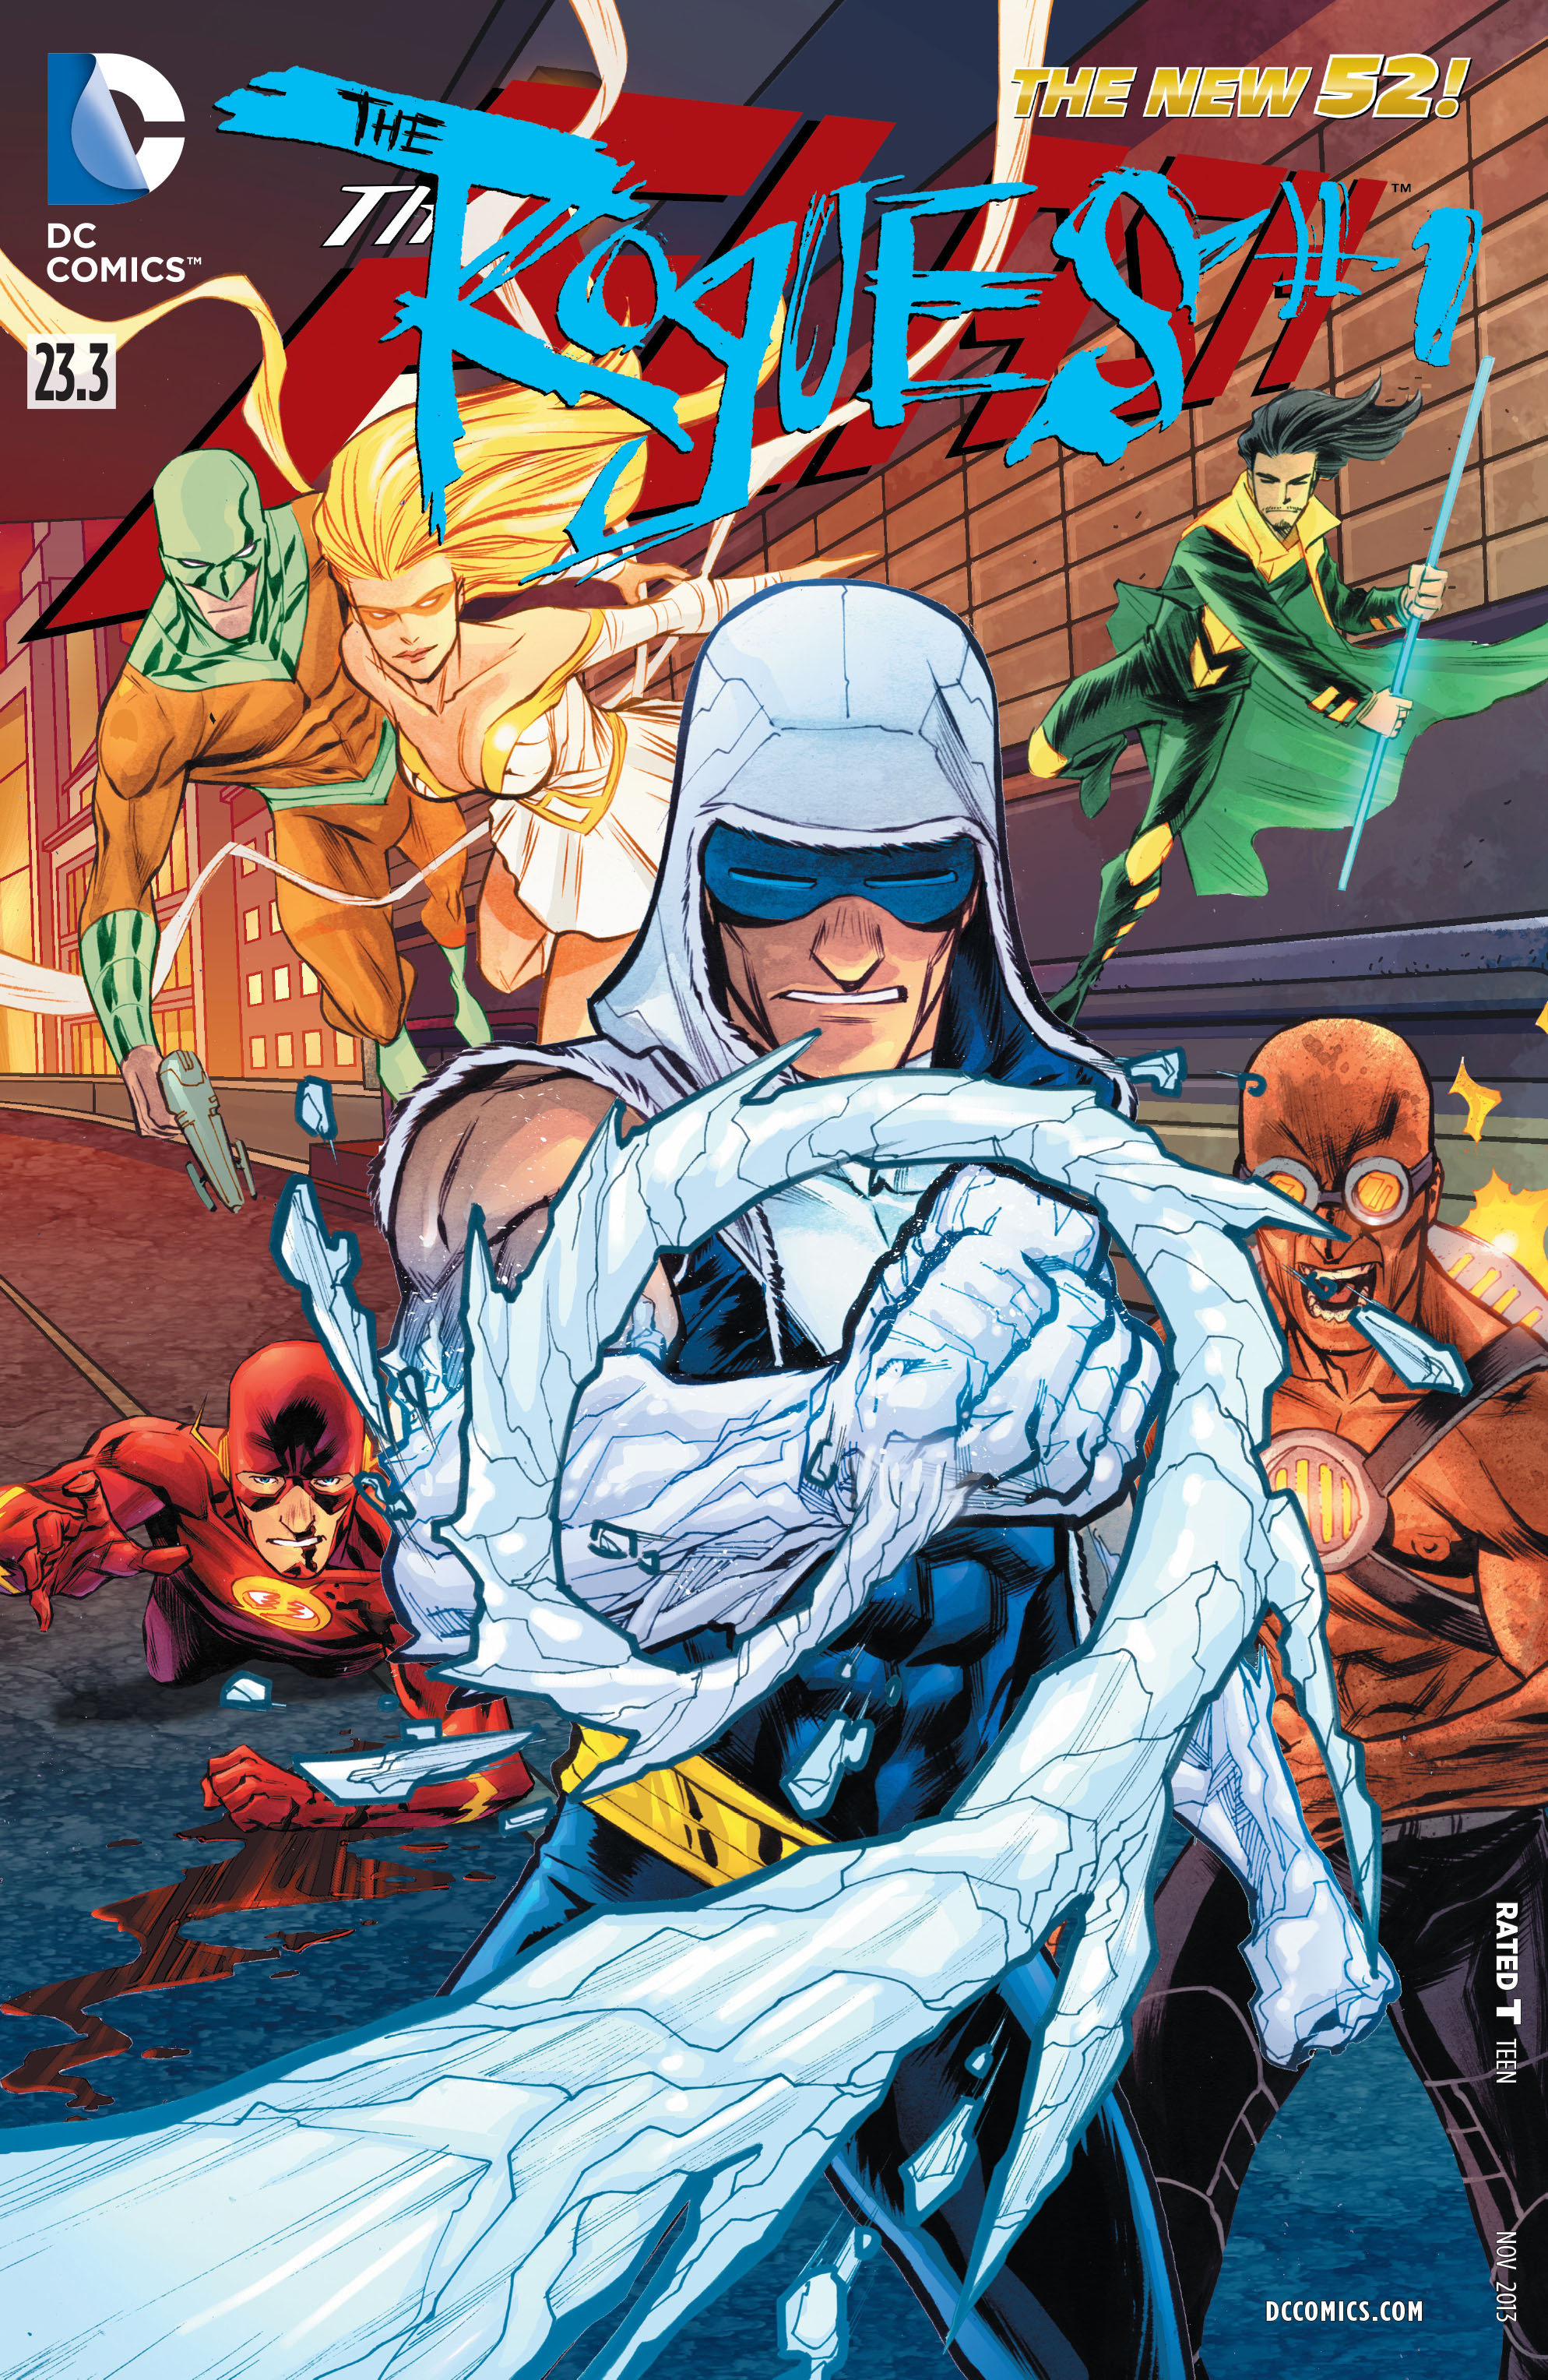 Flash, The 0023.3 Rogues